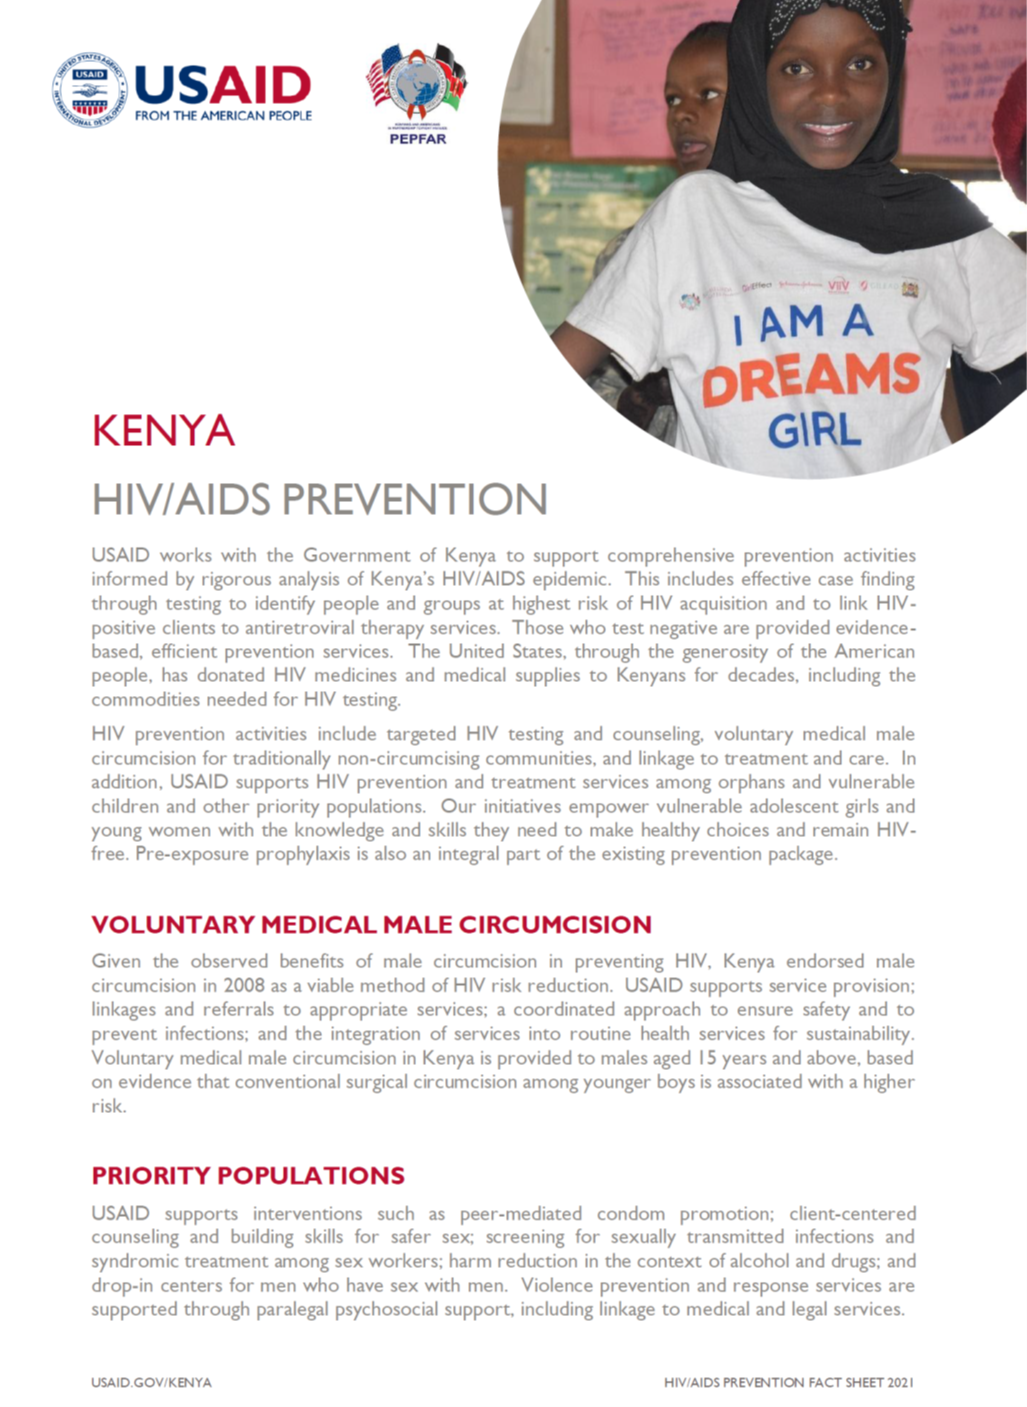 HIV/AIDS Prevention fact sheet